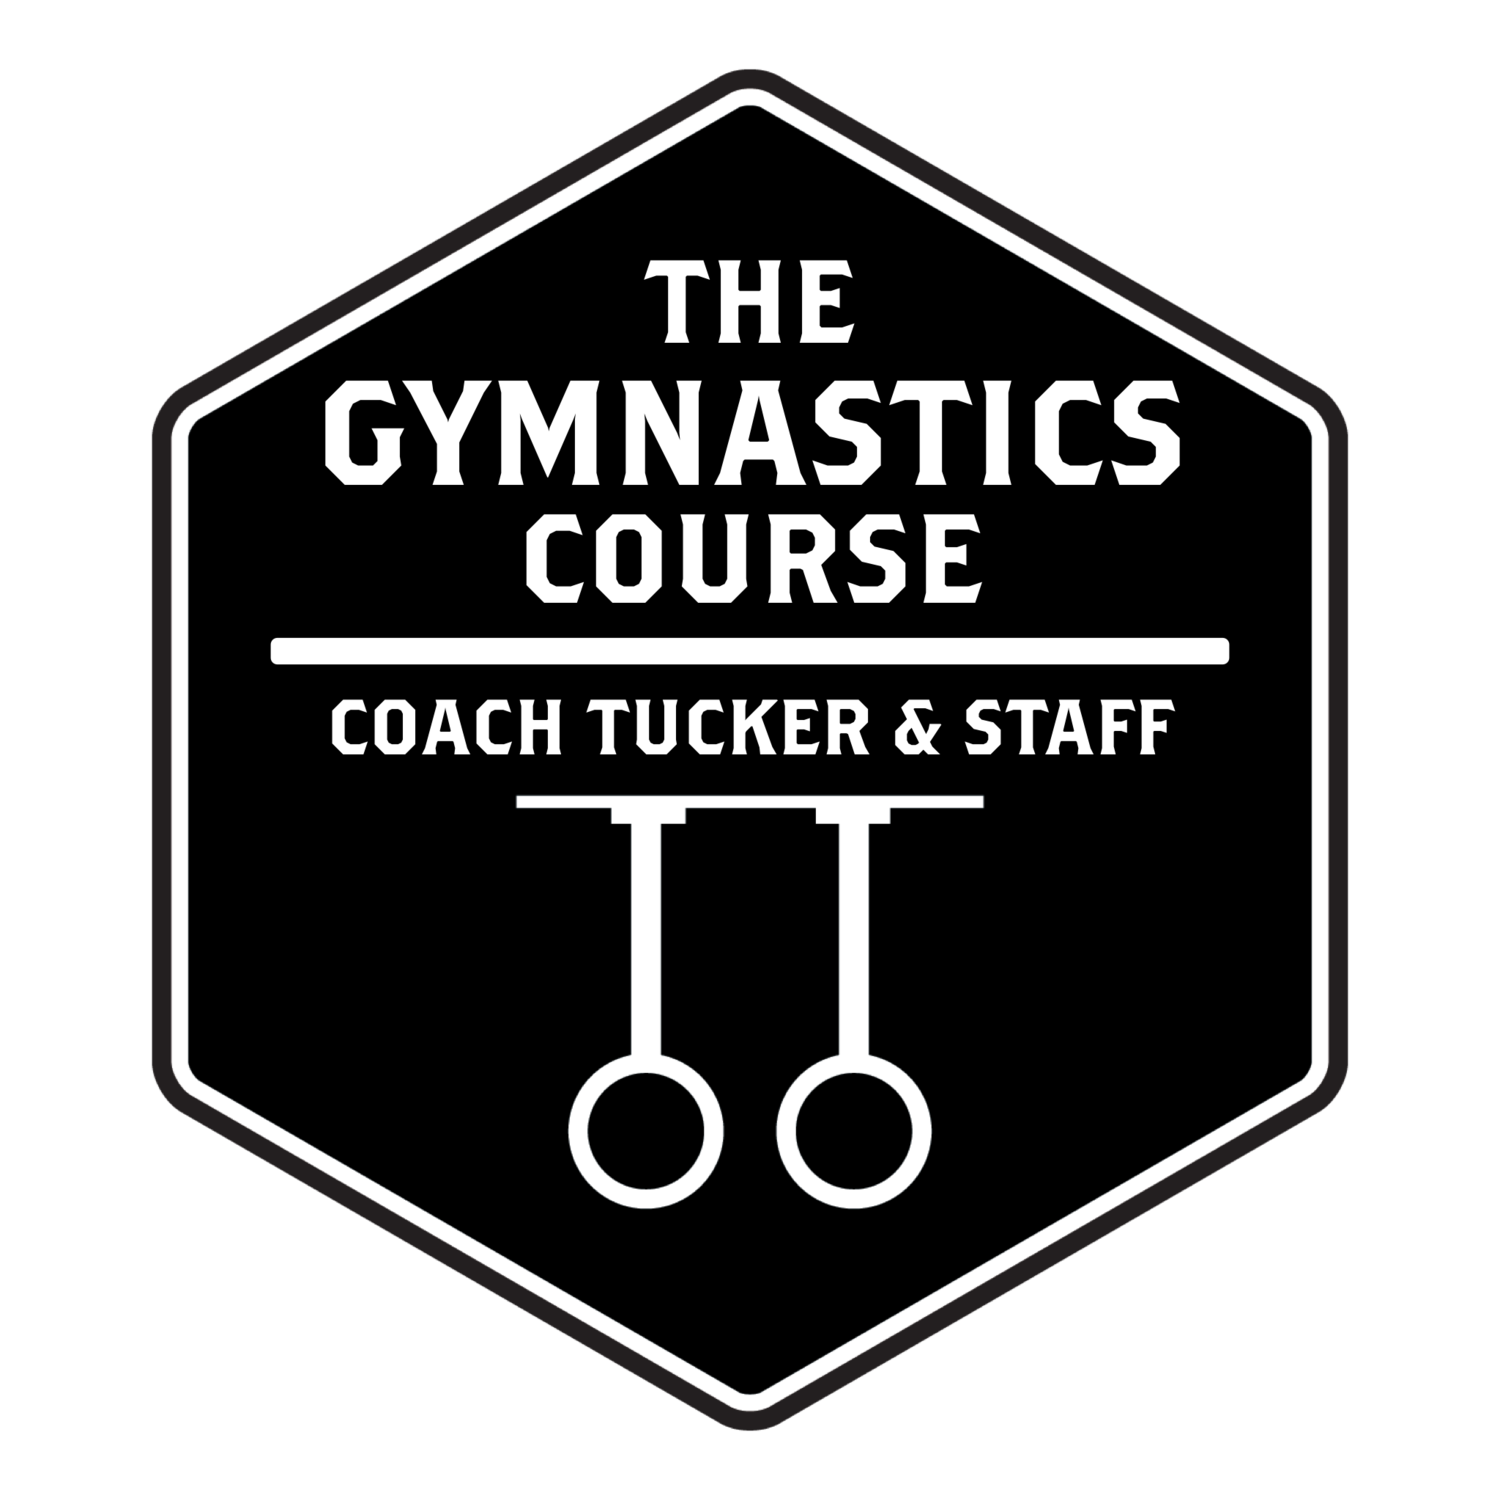 The Gymnastics Course